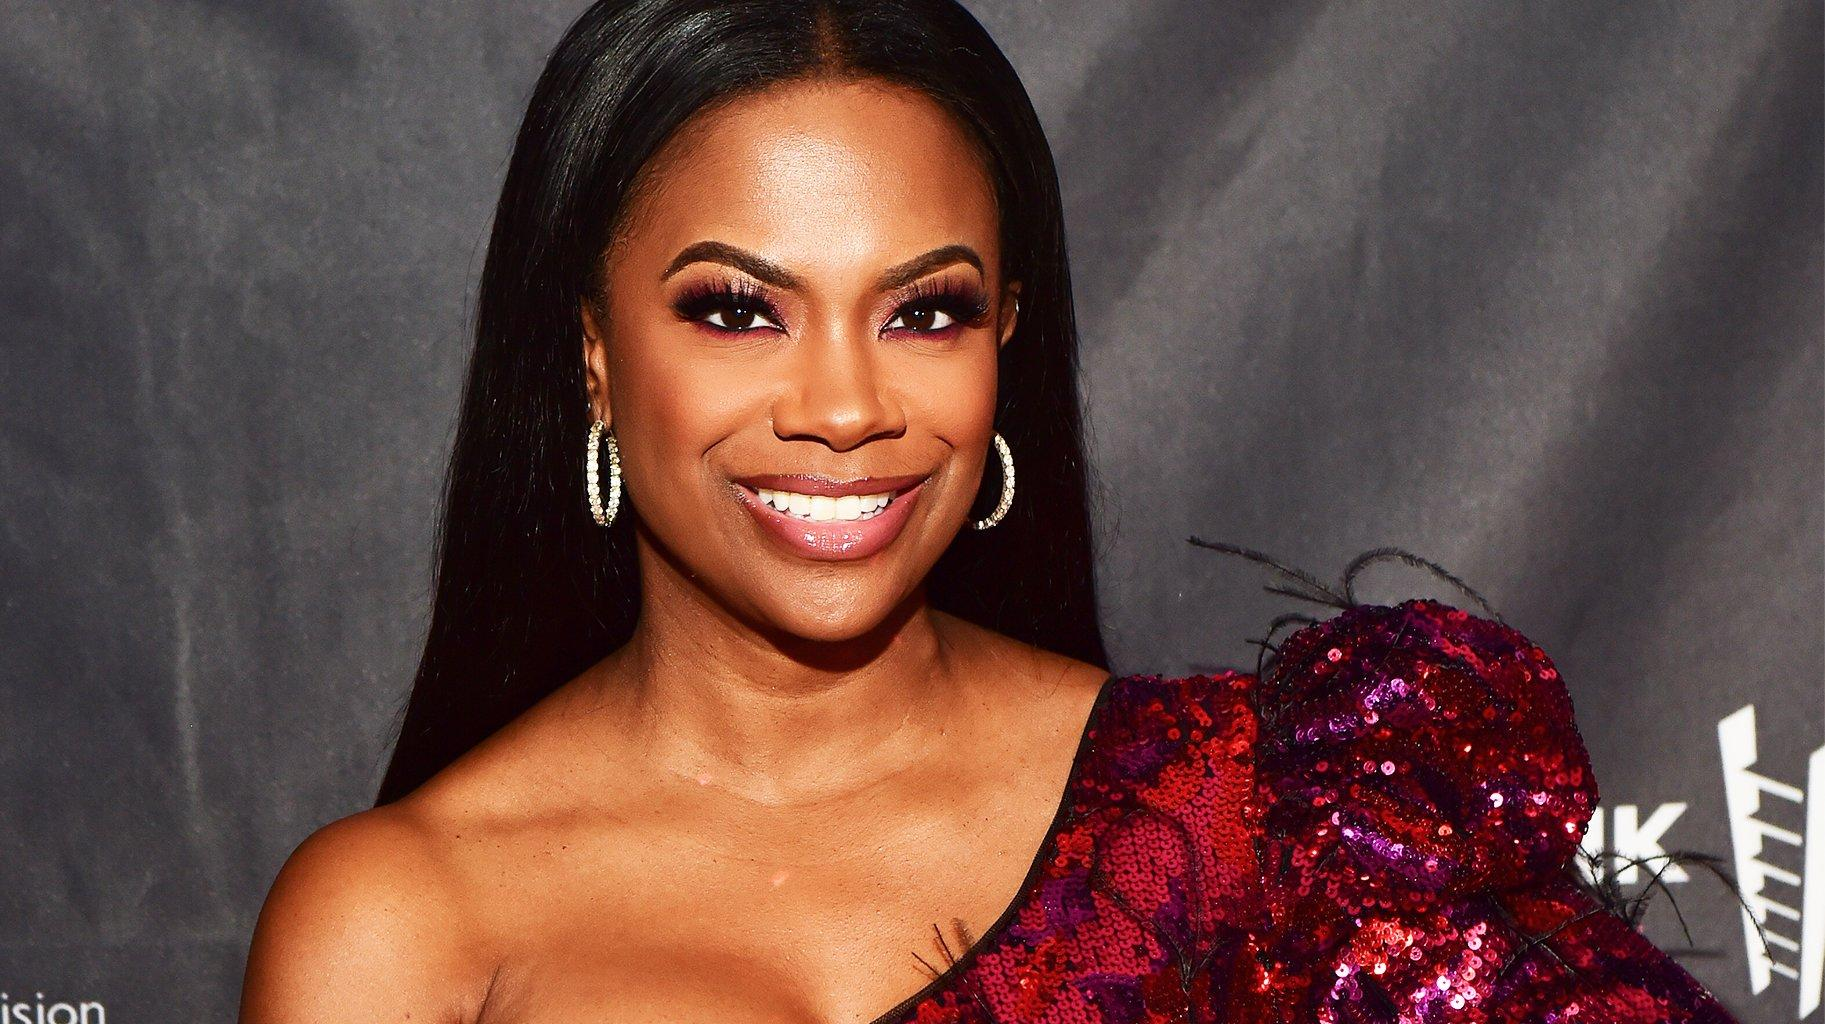 Kandi Burruss Shares A Throwback Pic From The First RHOA Season - Check It Out Here